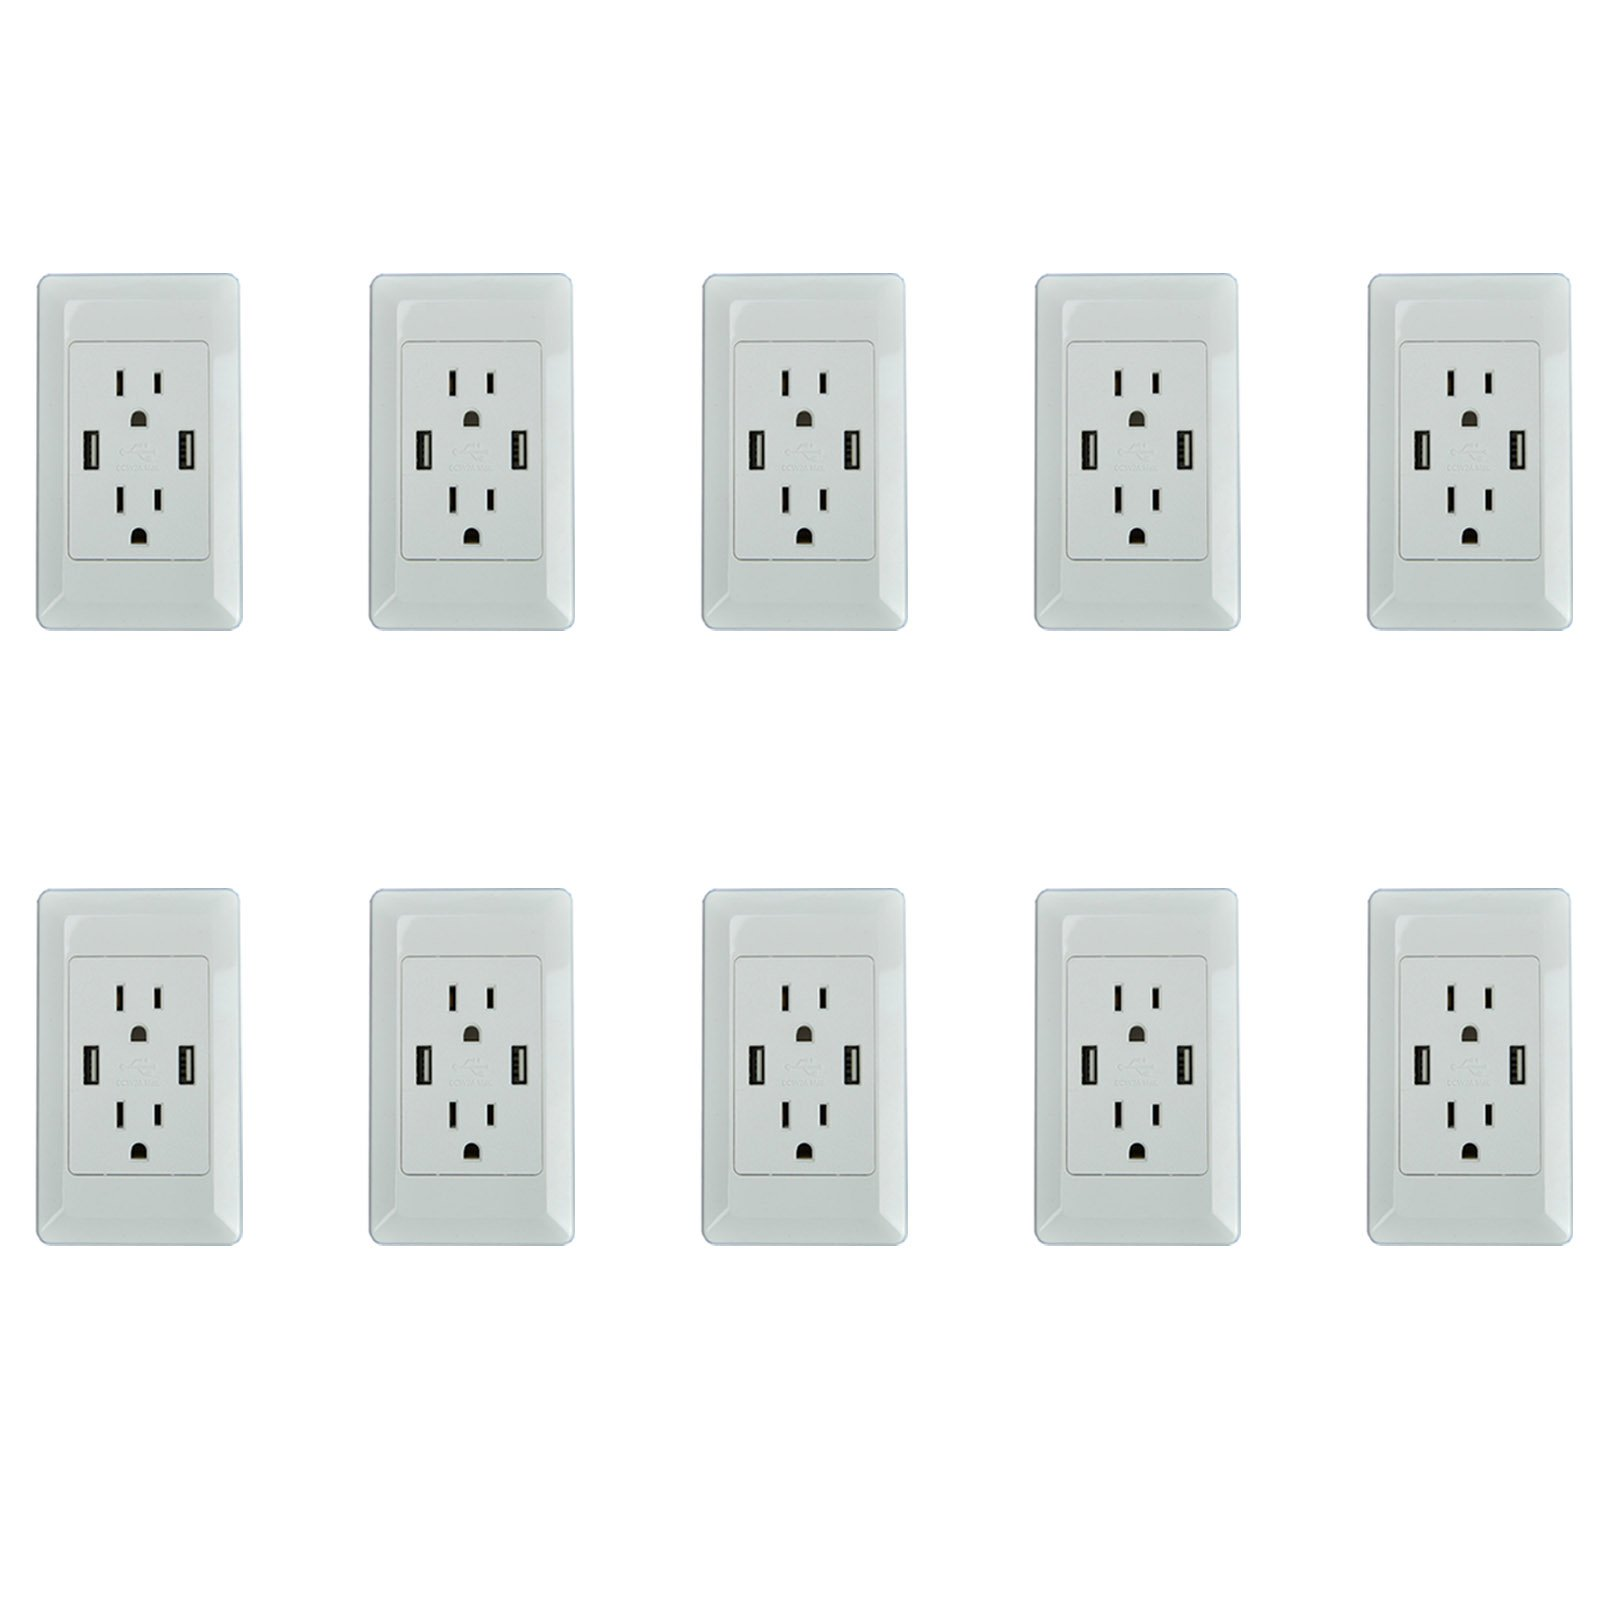 10 PK Dual USB Port Electric Wall Charger Power Outlet Panel Plate Dock Station Socket by greencycle